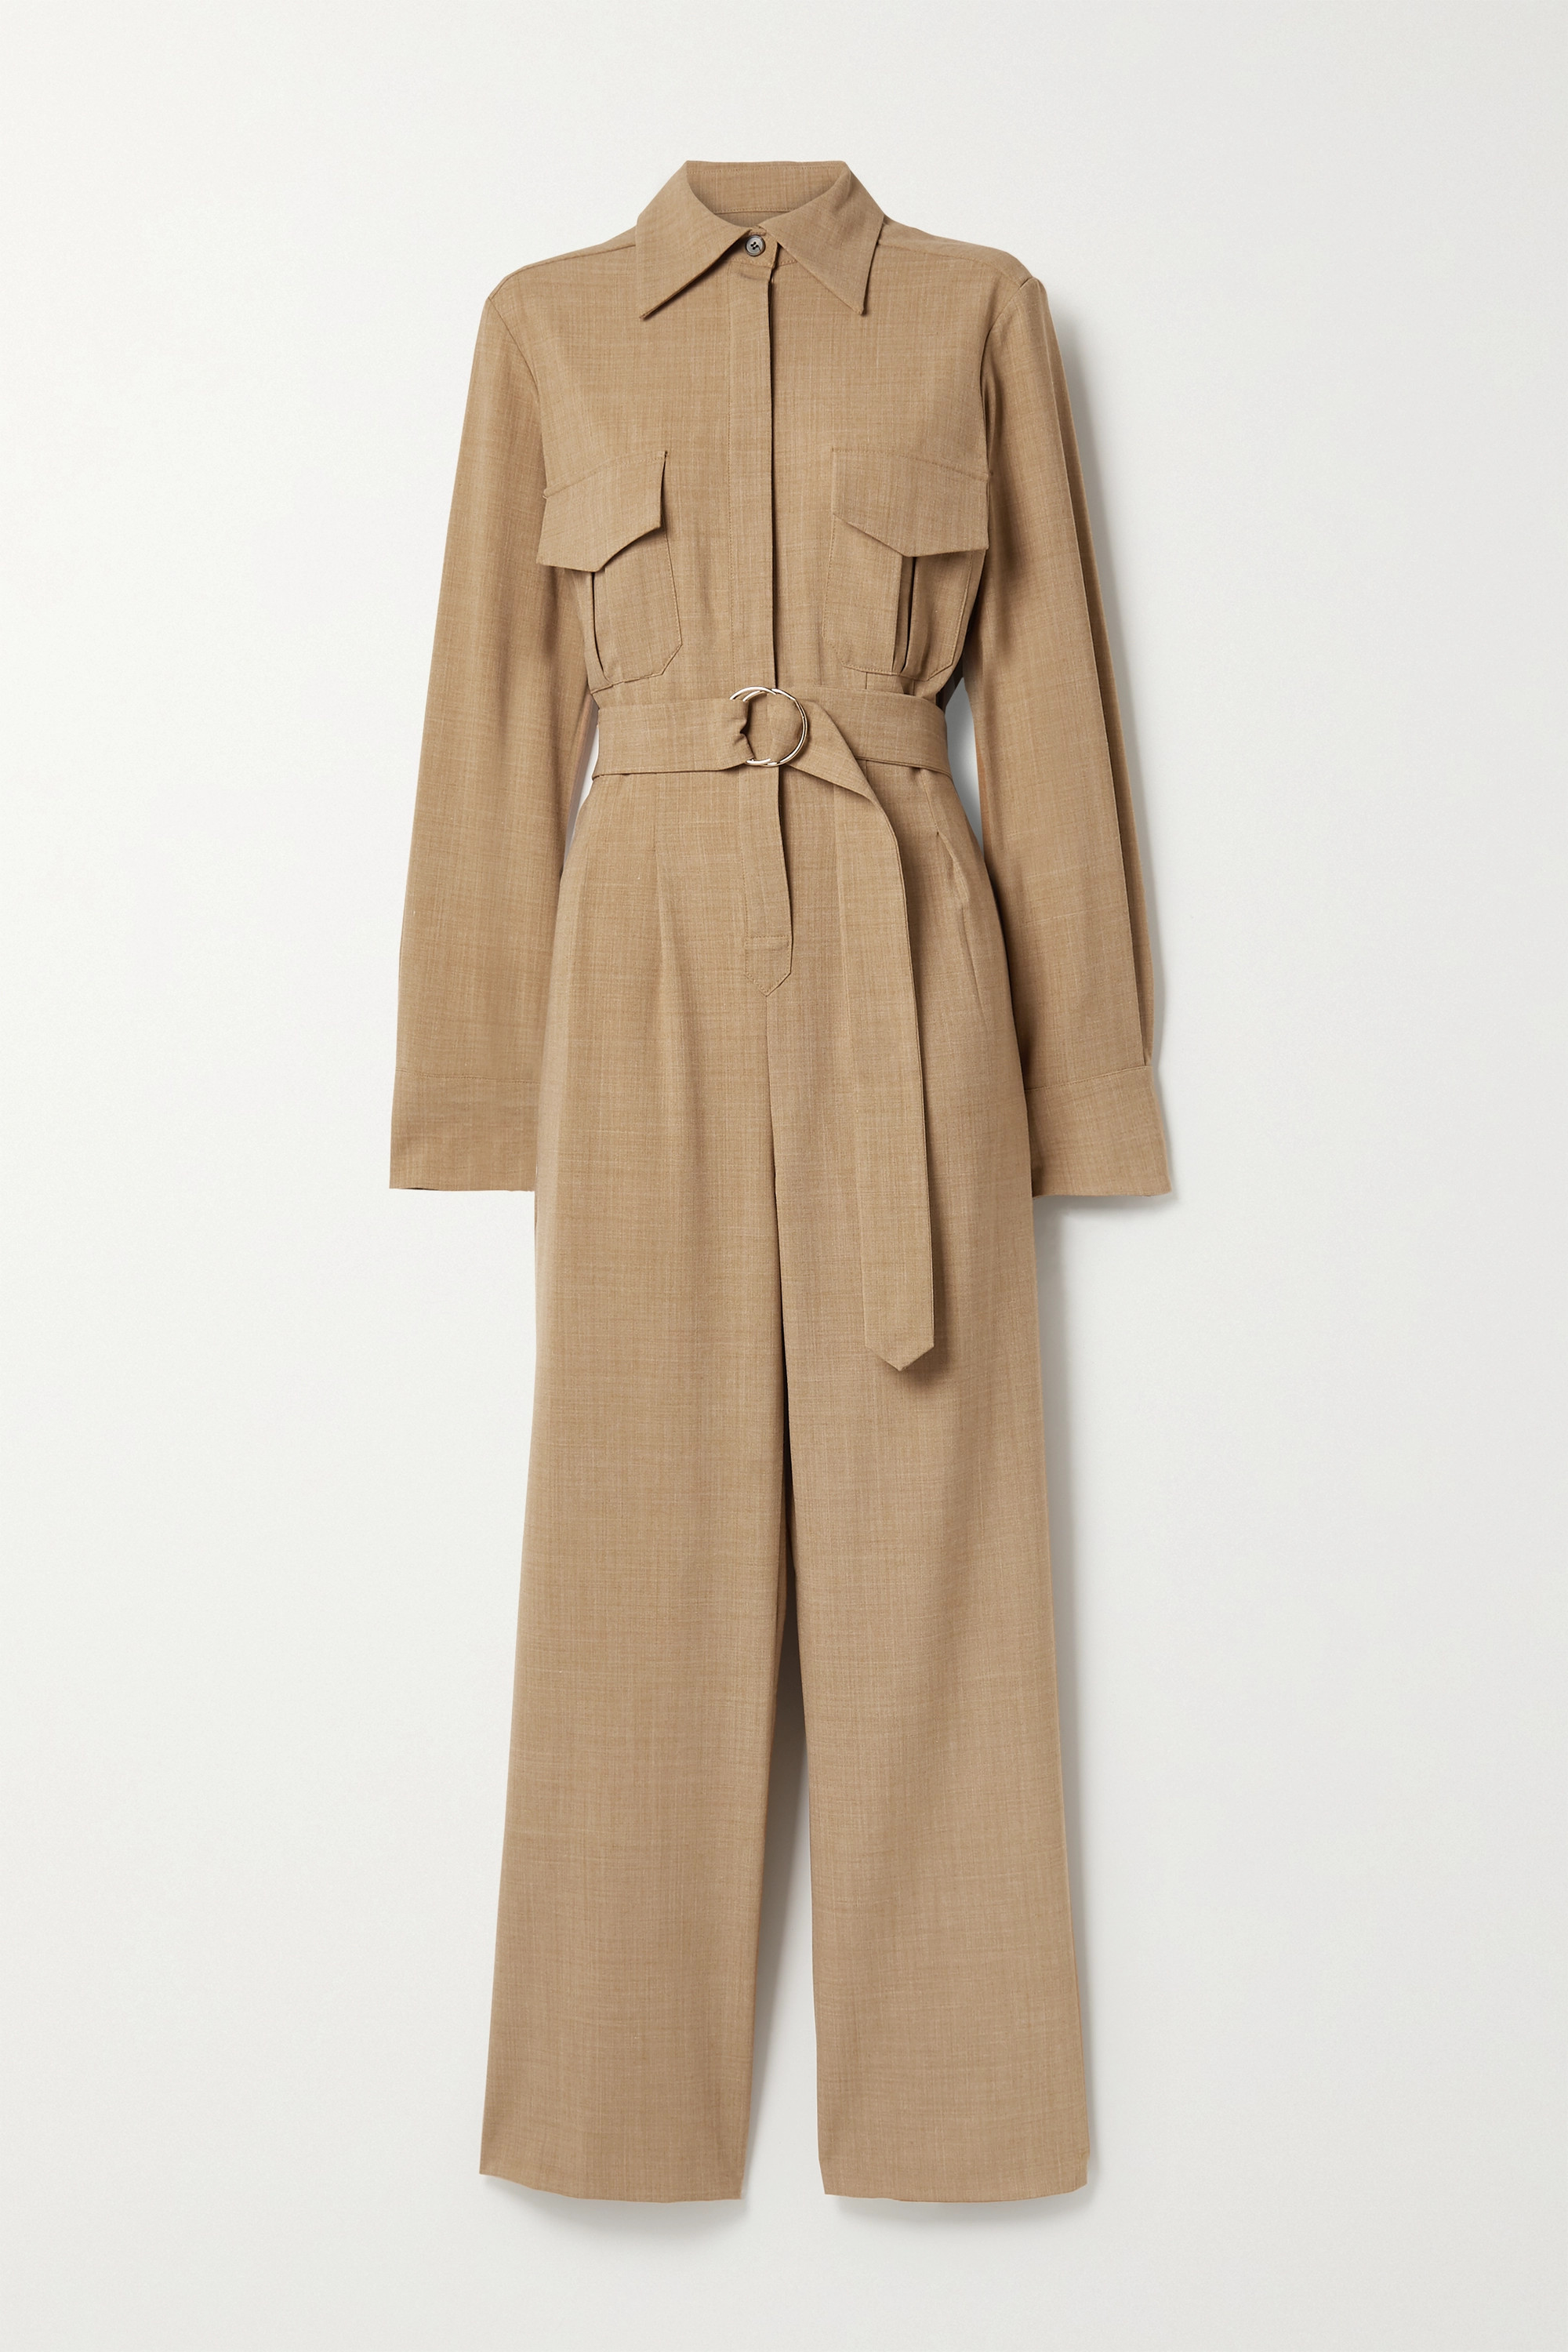 ANNA QUAN Coda belted woven jumpsuit